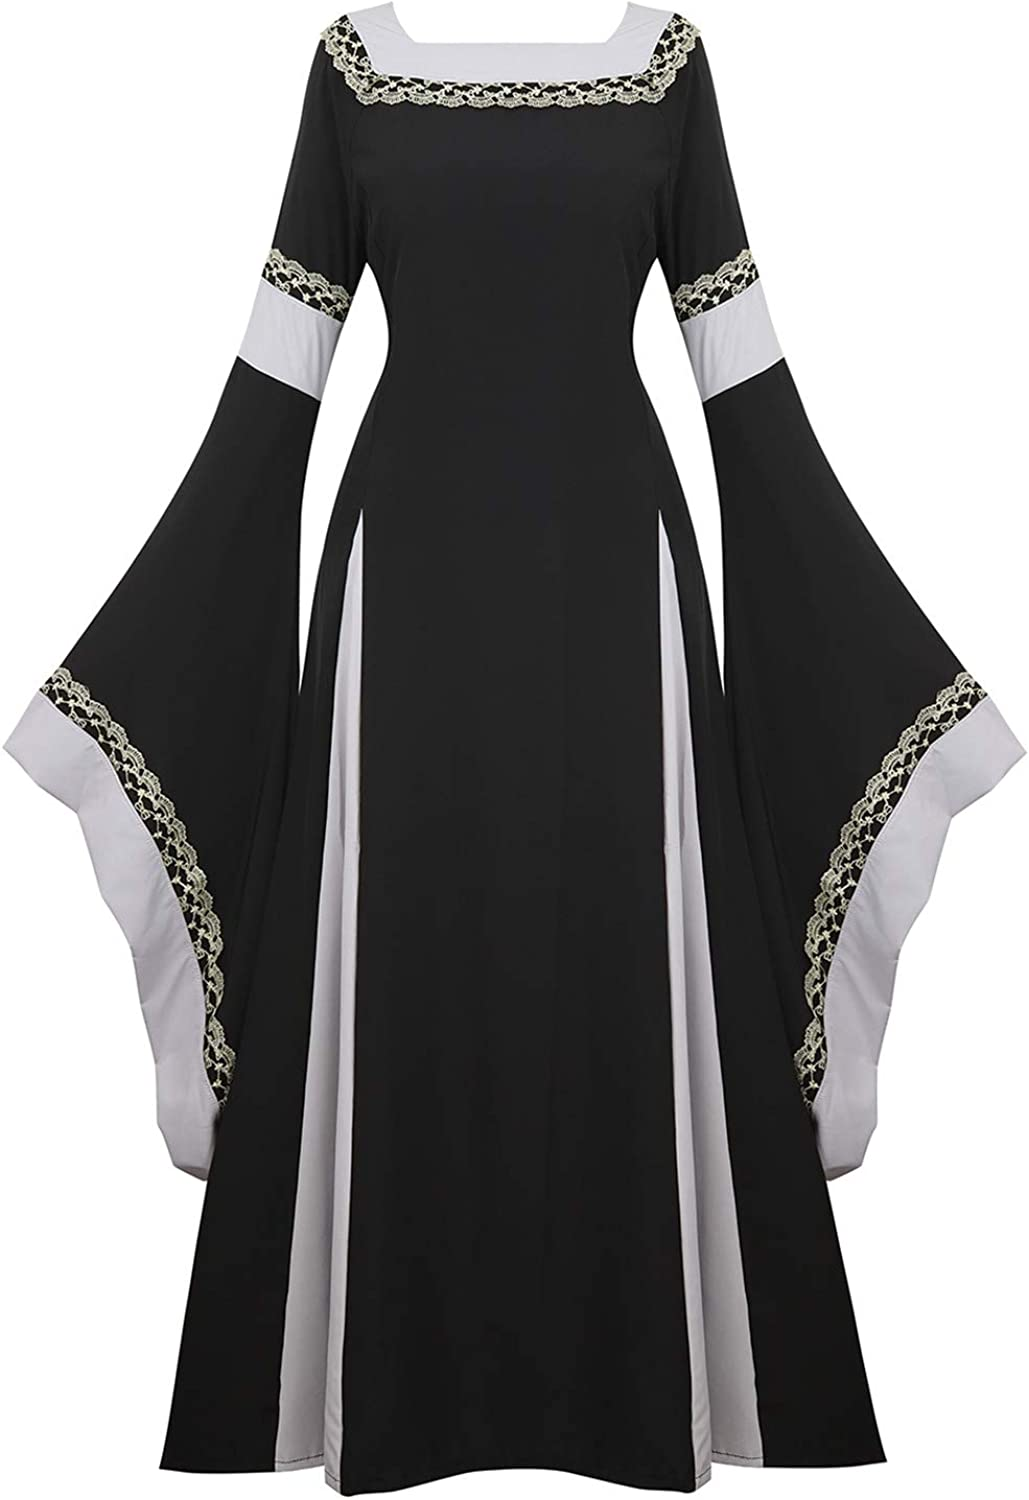 Women Medieval Vintage Skirt Lace Up Dress Halloween Costume Cosplay